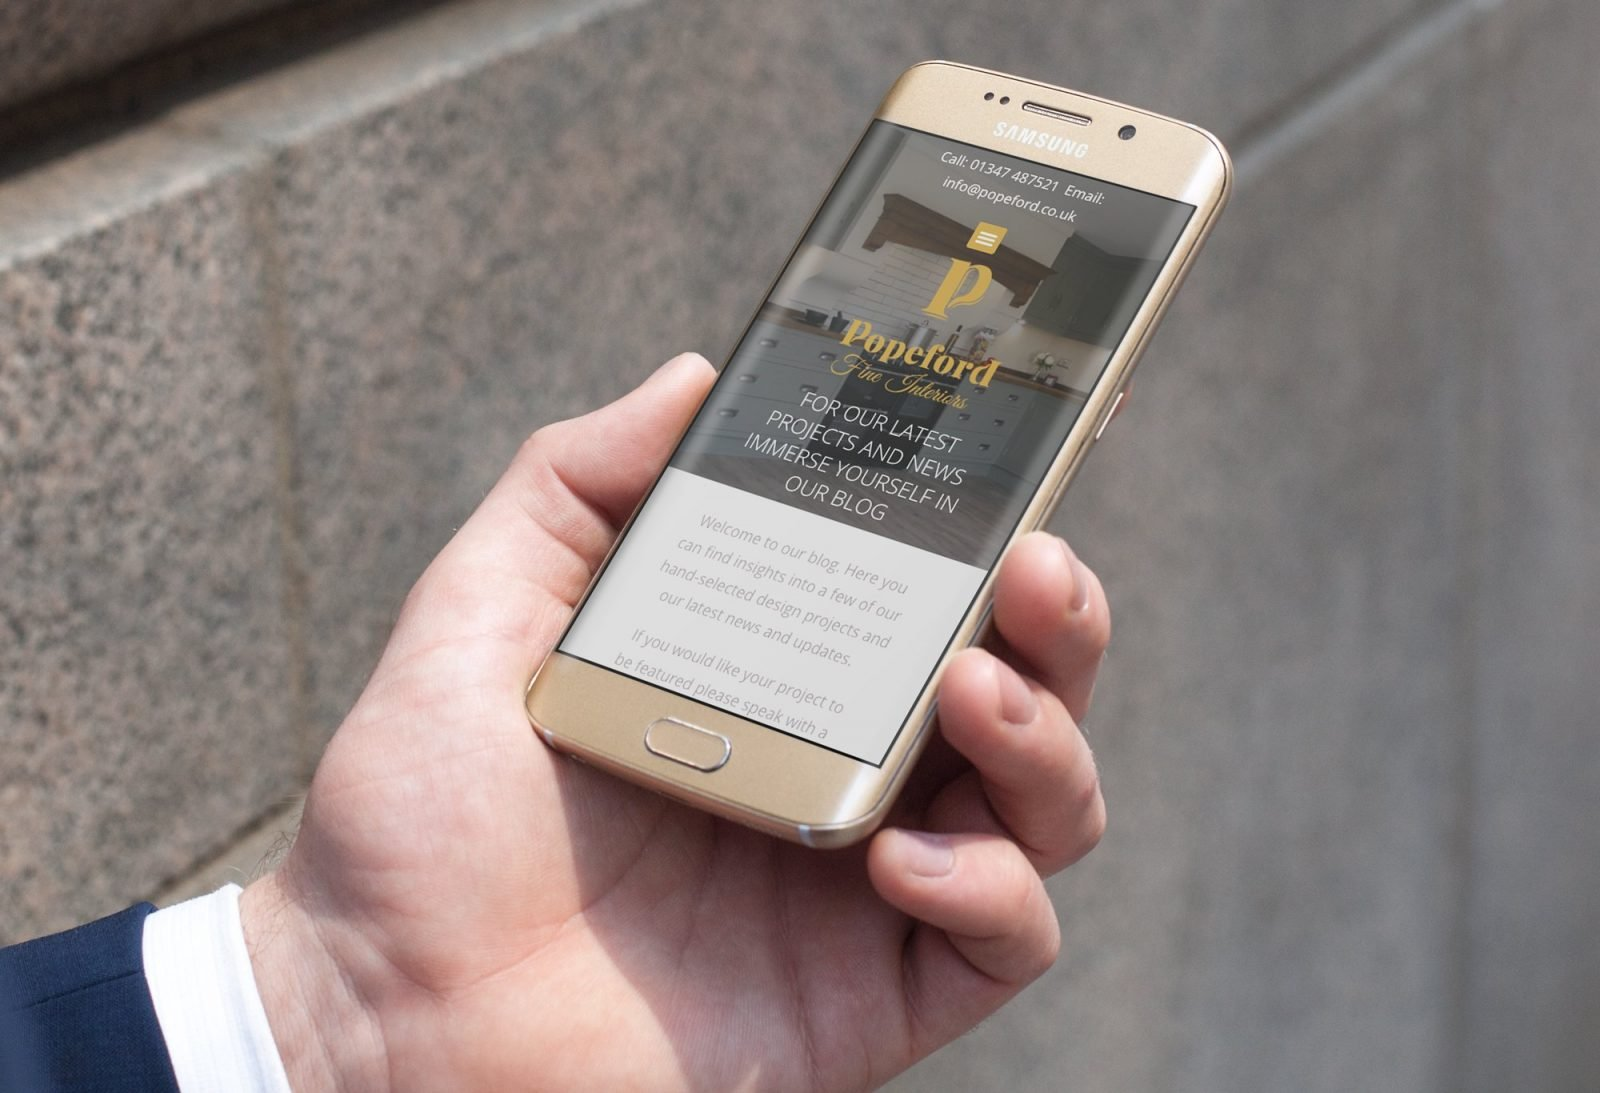 A phone showing the home page for Popeford Interior Designers website design